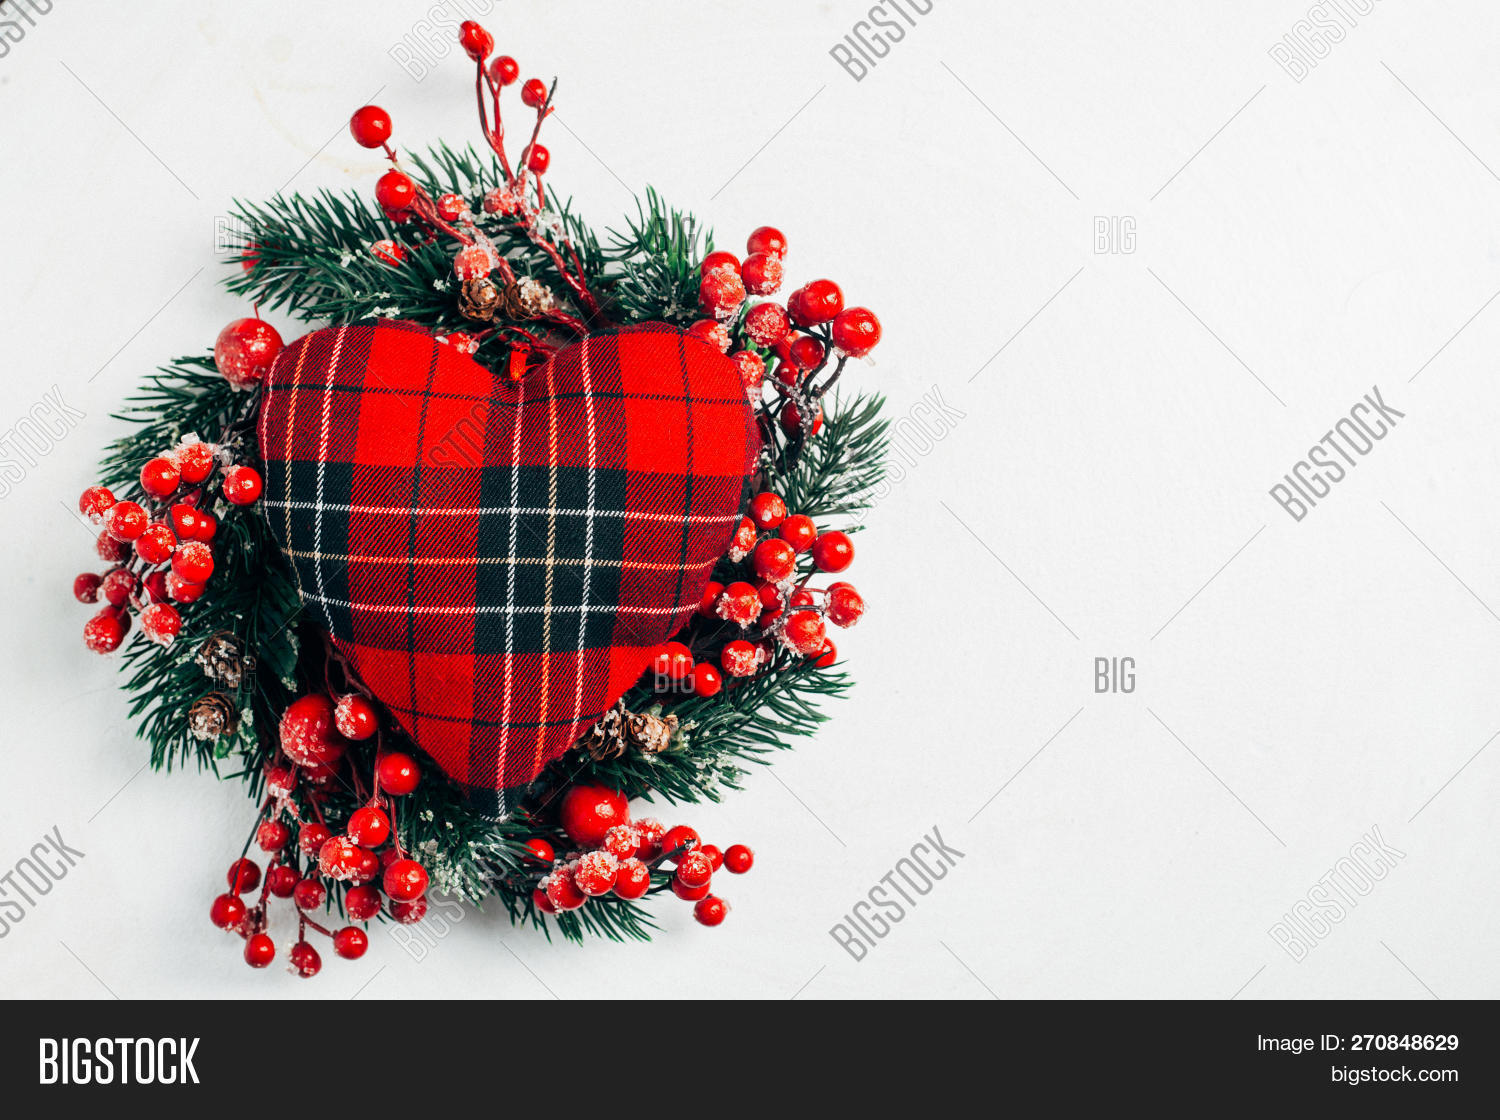 advent,arrangement,background,berry,branch,celebration,christmas,closeup,cone,december,decorated,decoration,decorative,design,evergreen,festive,fir,flora,garland,gift,green,greeting,holiday,holly,isolated,leaf,merry,nature,new,nobody,noel,ornament,pattern,pine,plant,red,round,season,seasonal,snow,symbol,tradition,traditional,tree,twig,white,winter,wreath,xmas,year